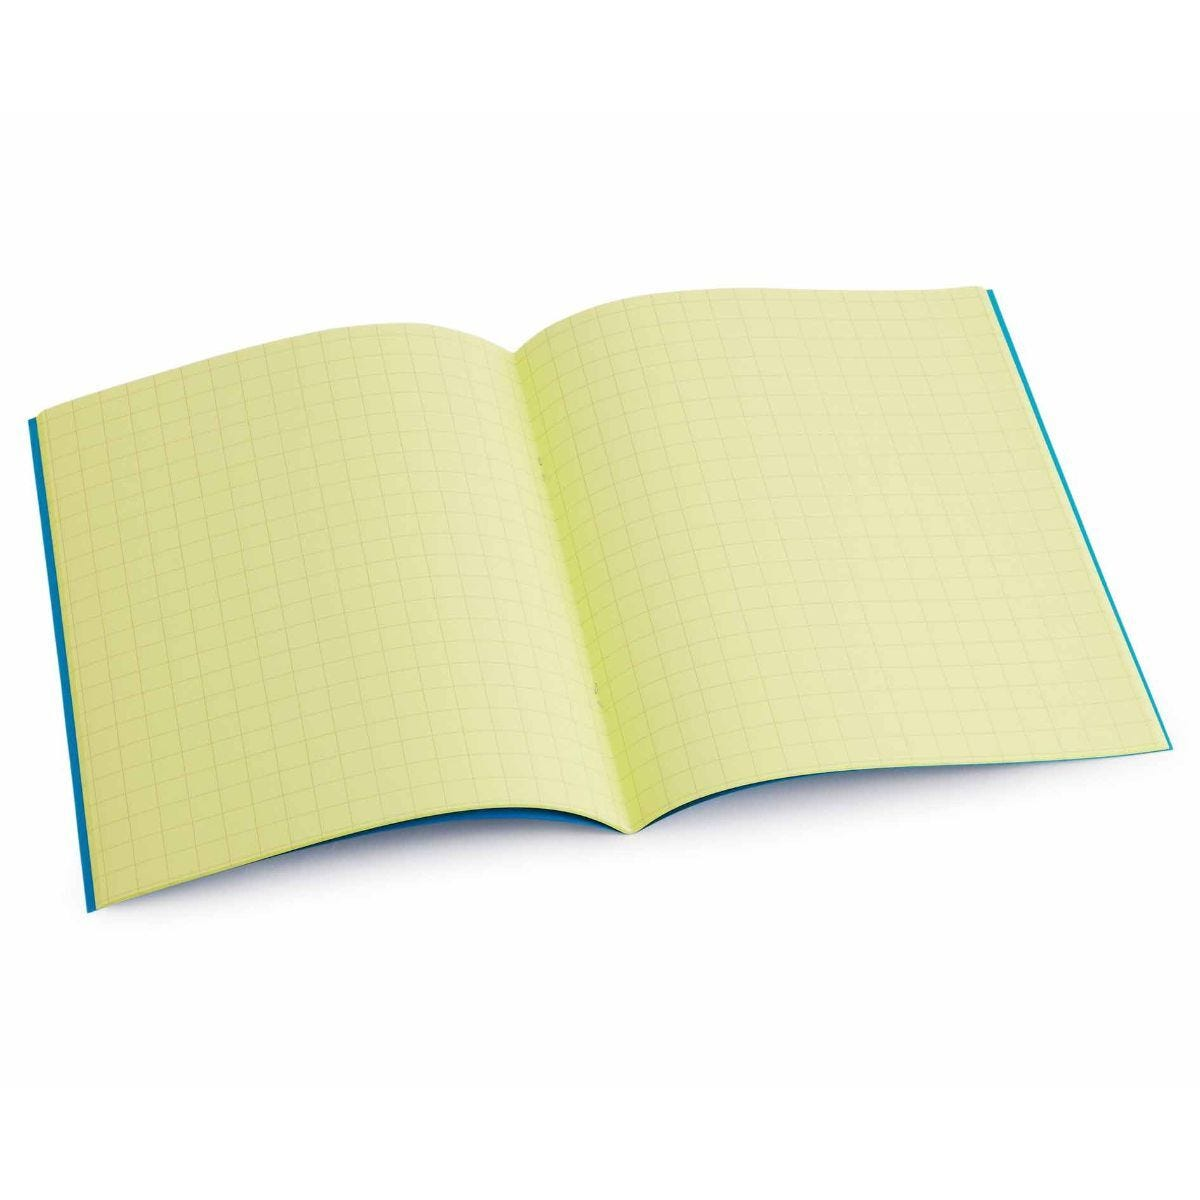 Tinted Exercise Book Standard 7x9 Squared 10mm Yellow